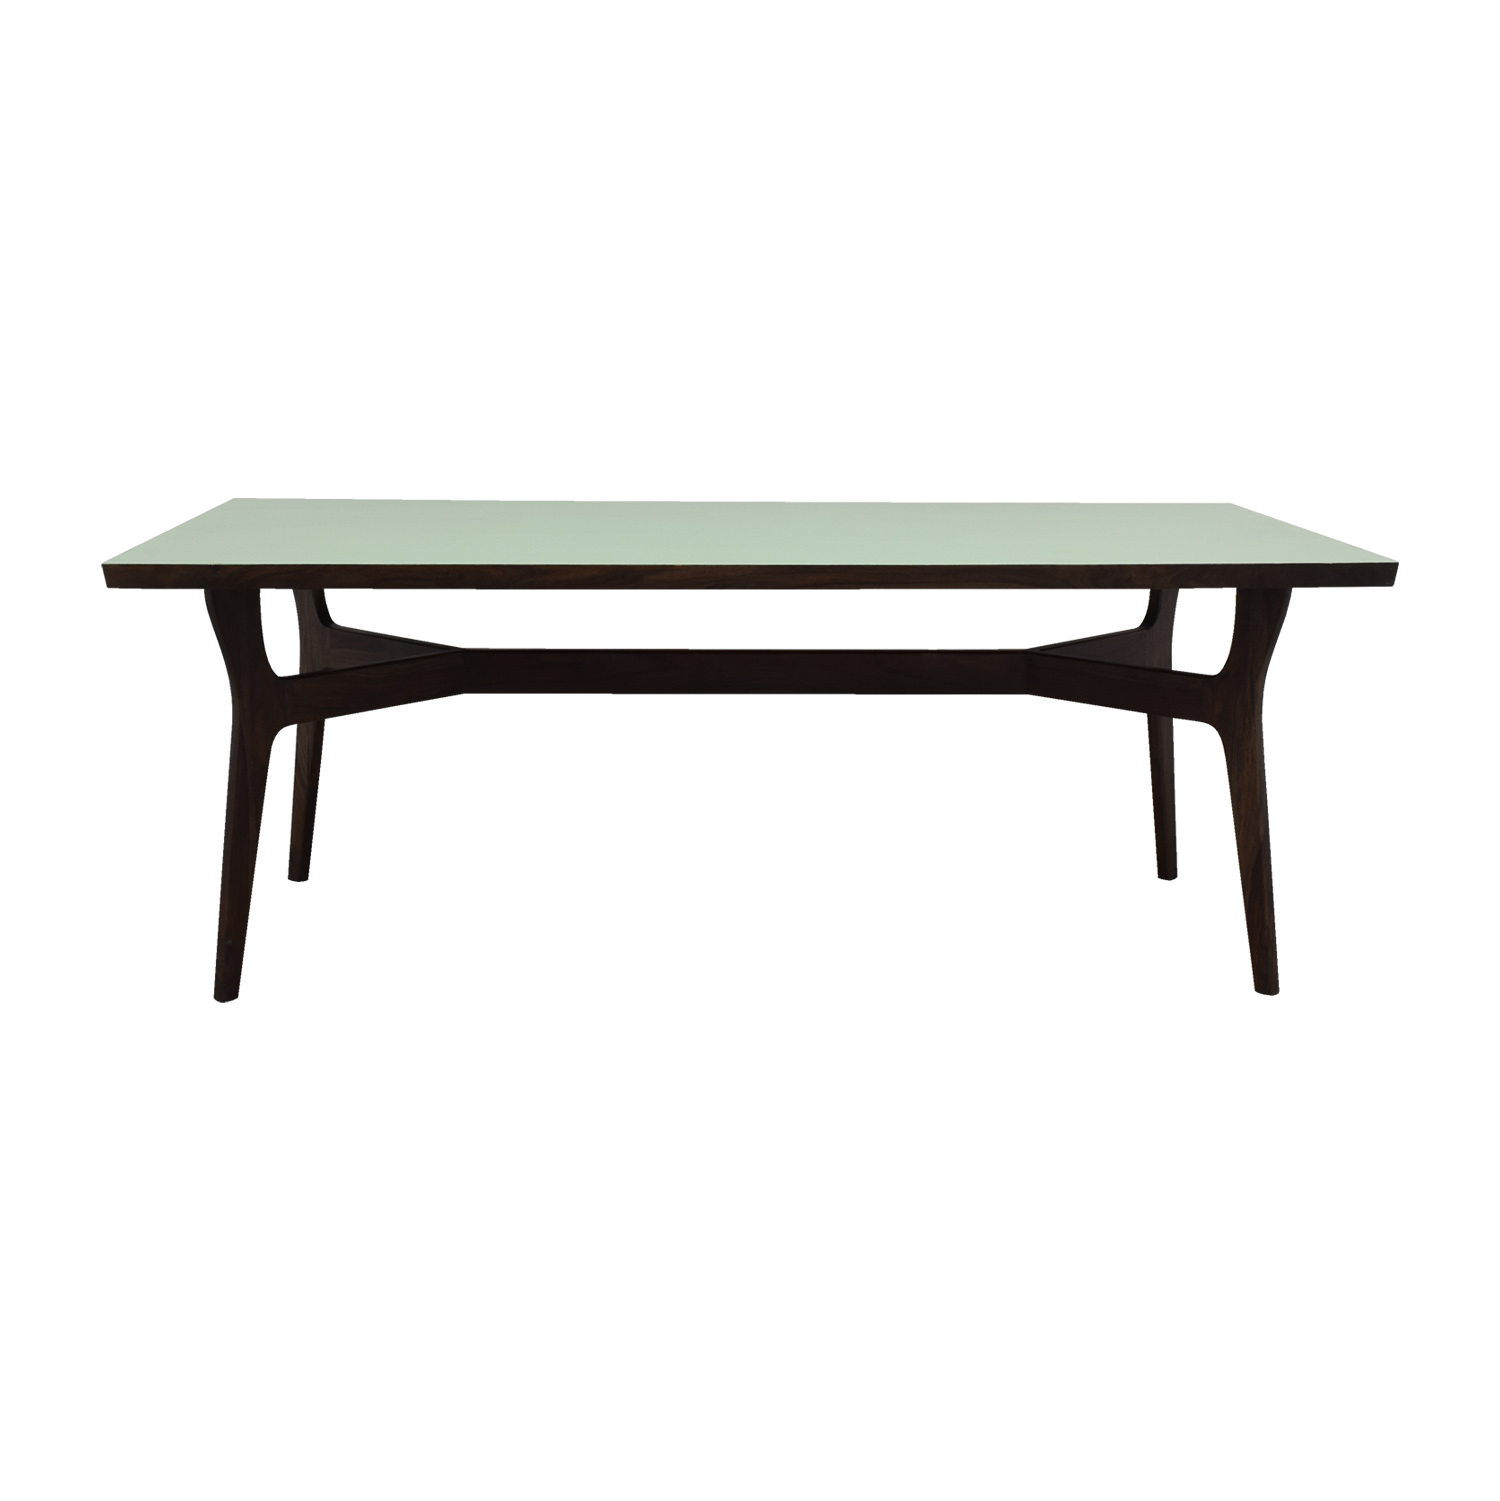 Wood and Teal Dining Table for sale